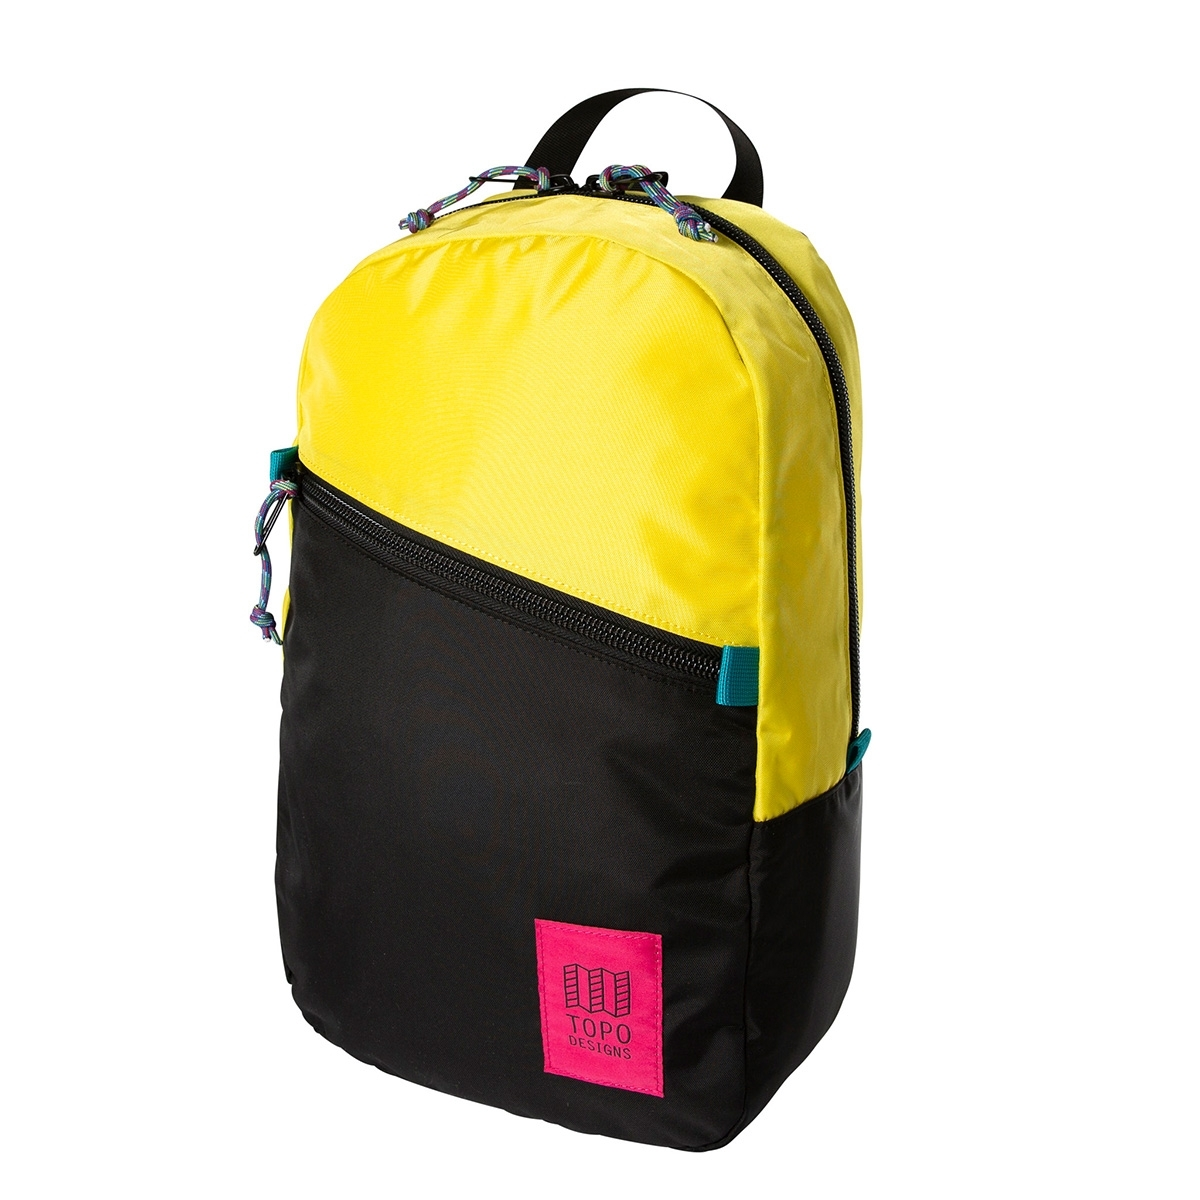 Topo Designs Light Pack Yellow/Black